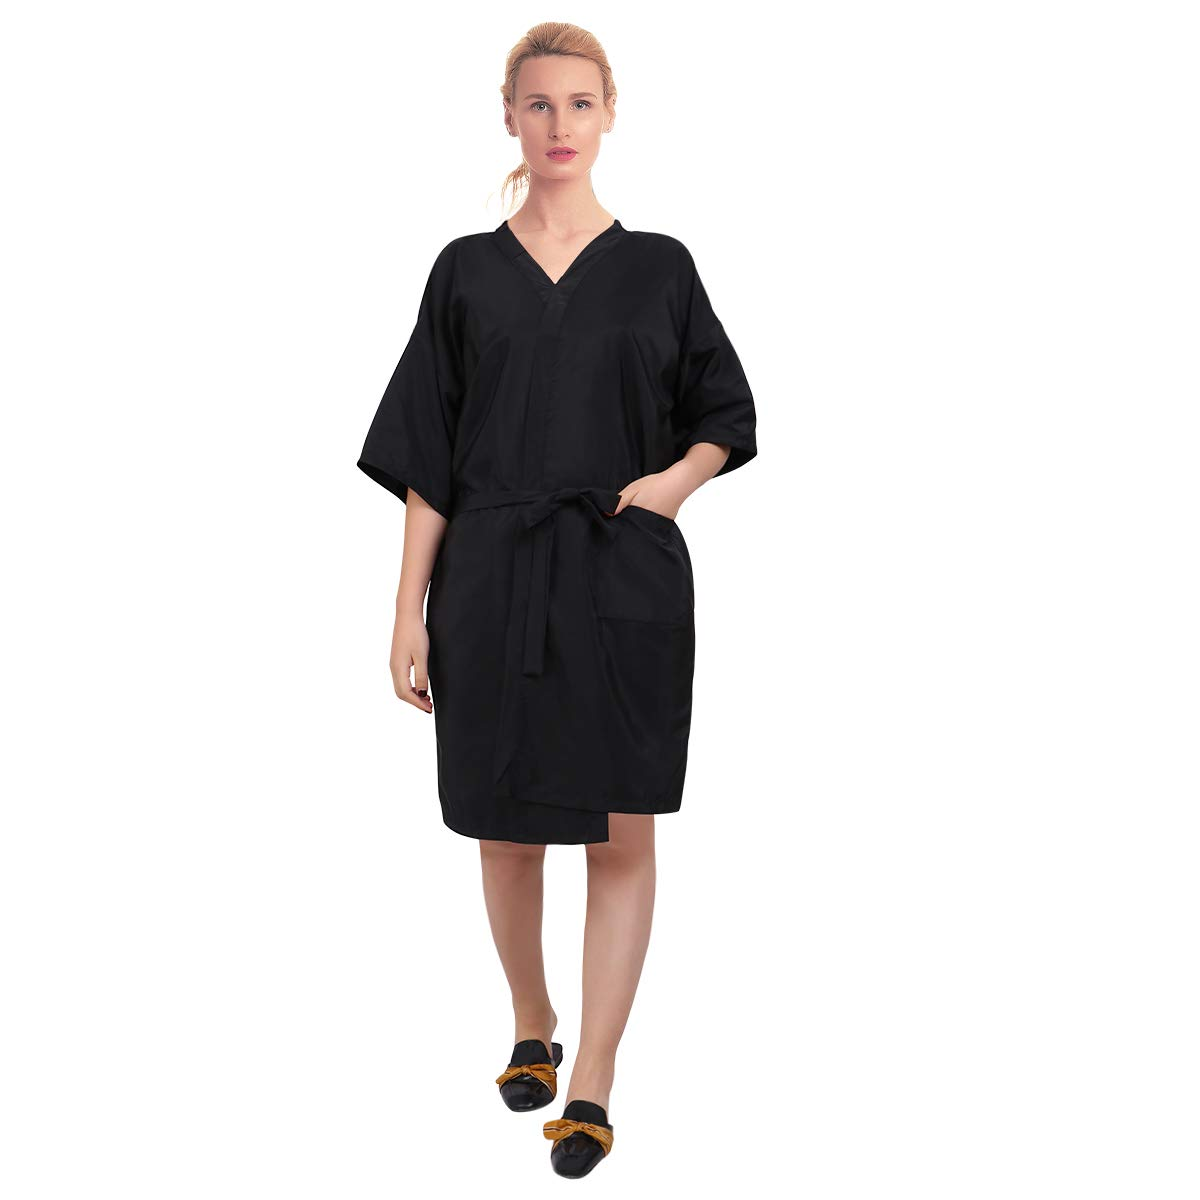 Lurrose Barber Grooming Smock for Women Men, Salon Client Gowns Capes Robes Hair Salon Smock Waterproof, Black, 39.4 x 41.7 Inches by Lurrose